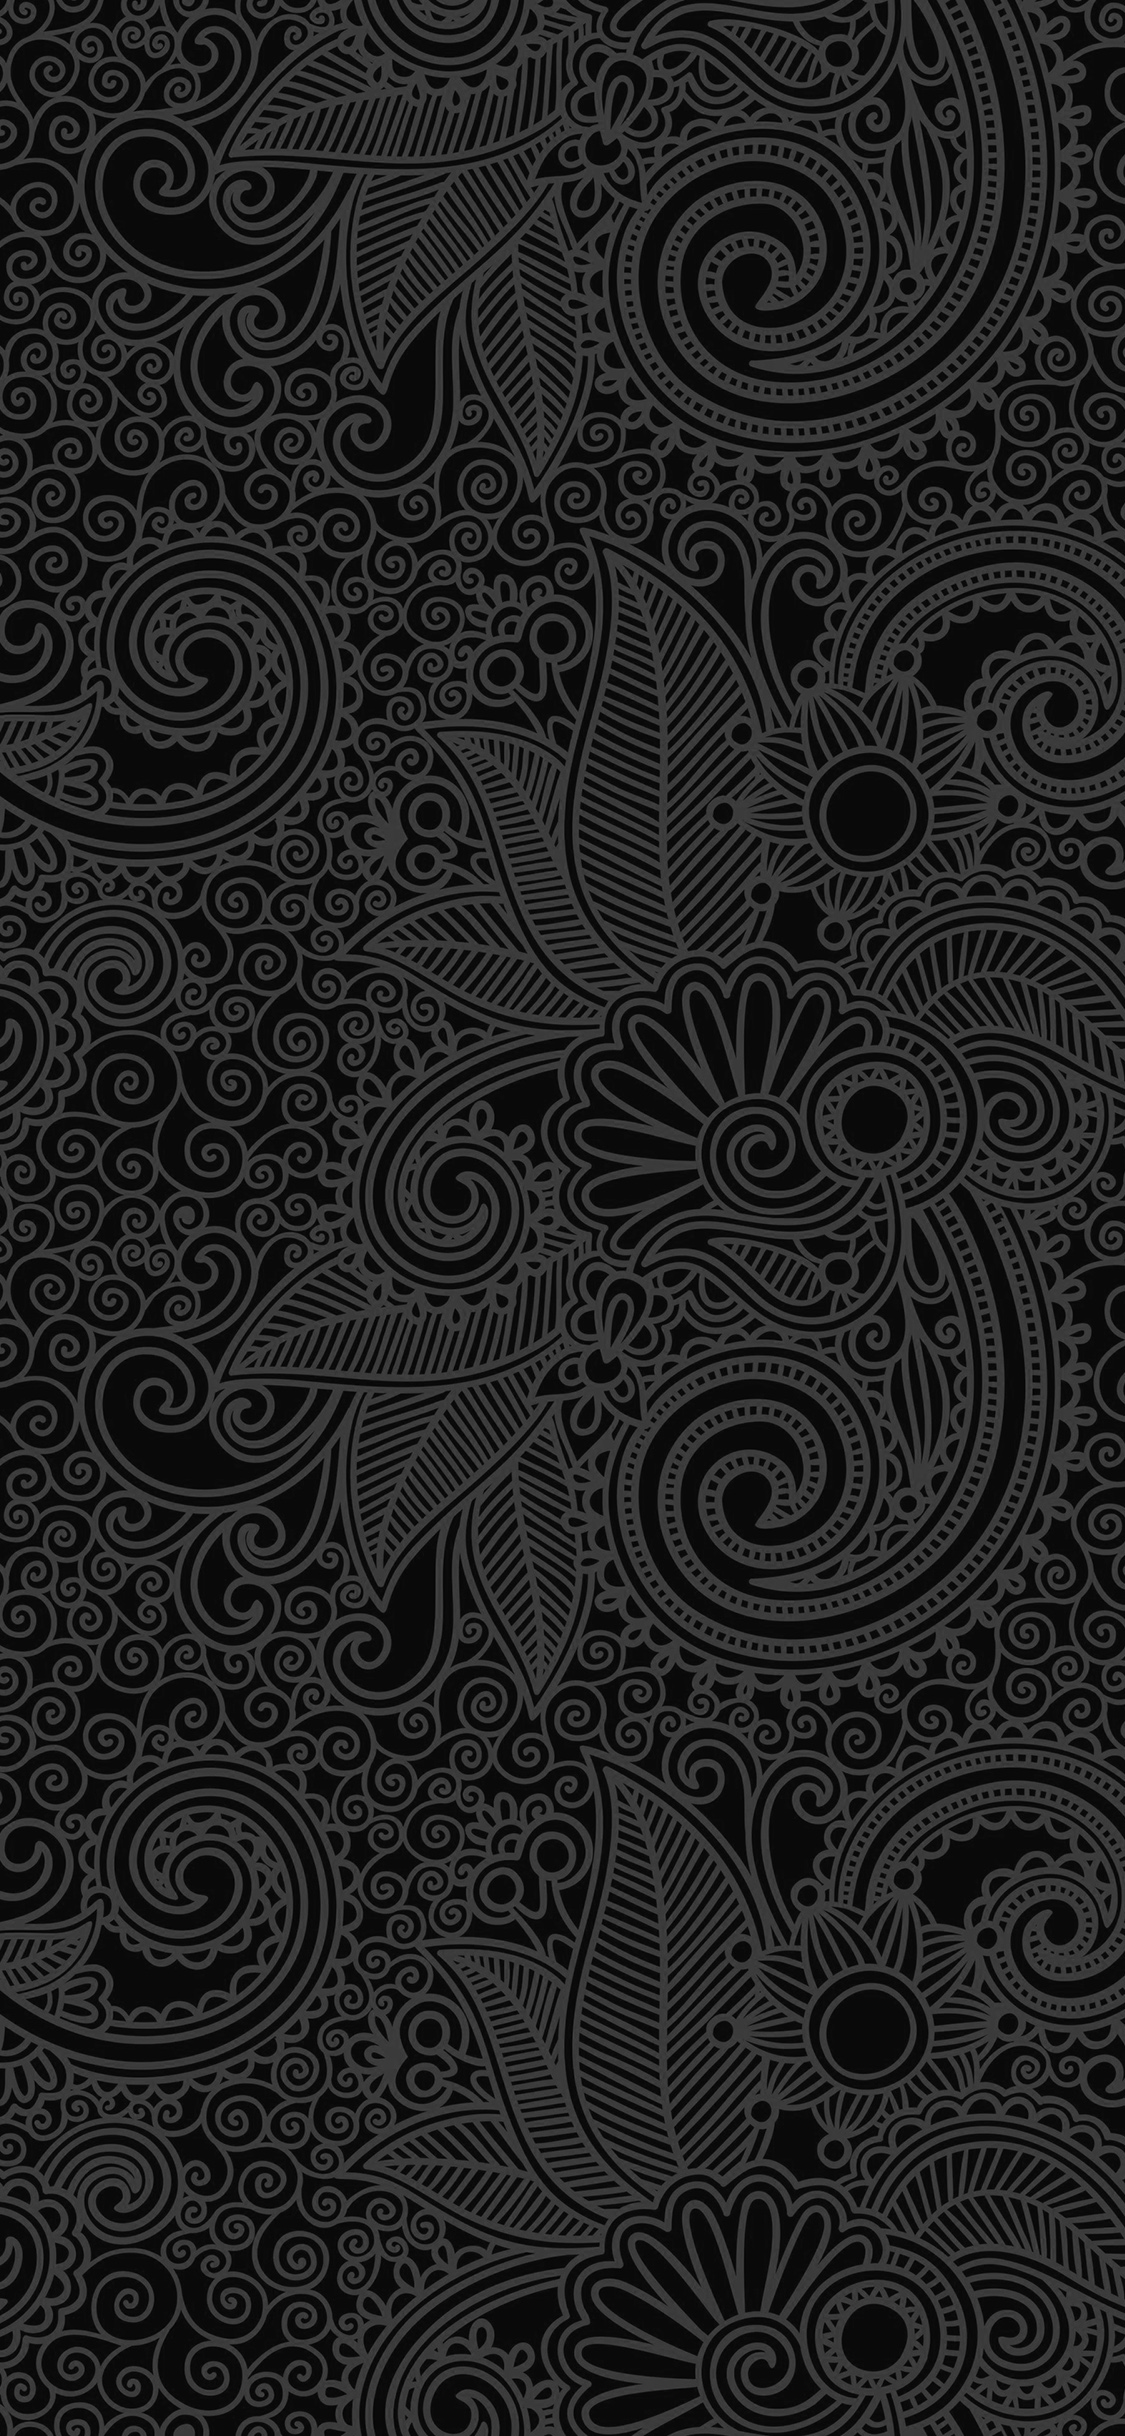 iPhoneXpapers.com-Apple-iPhone-wallpaper-vk29-wallpaper-design-flower-line-dark-bw-pattern